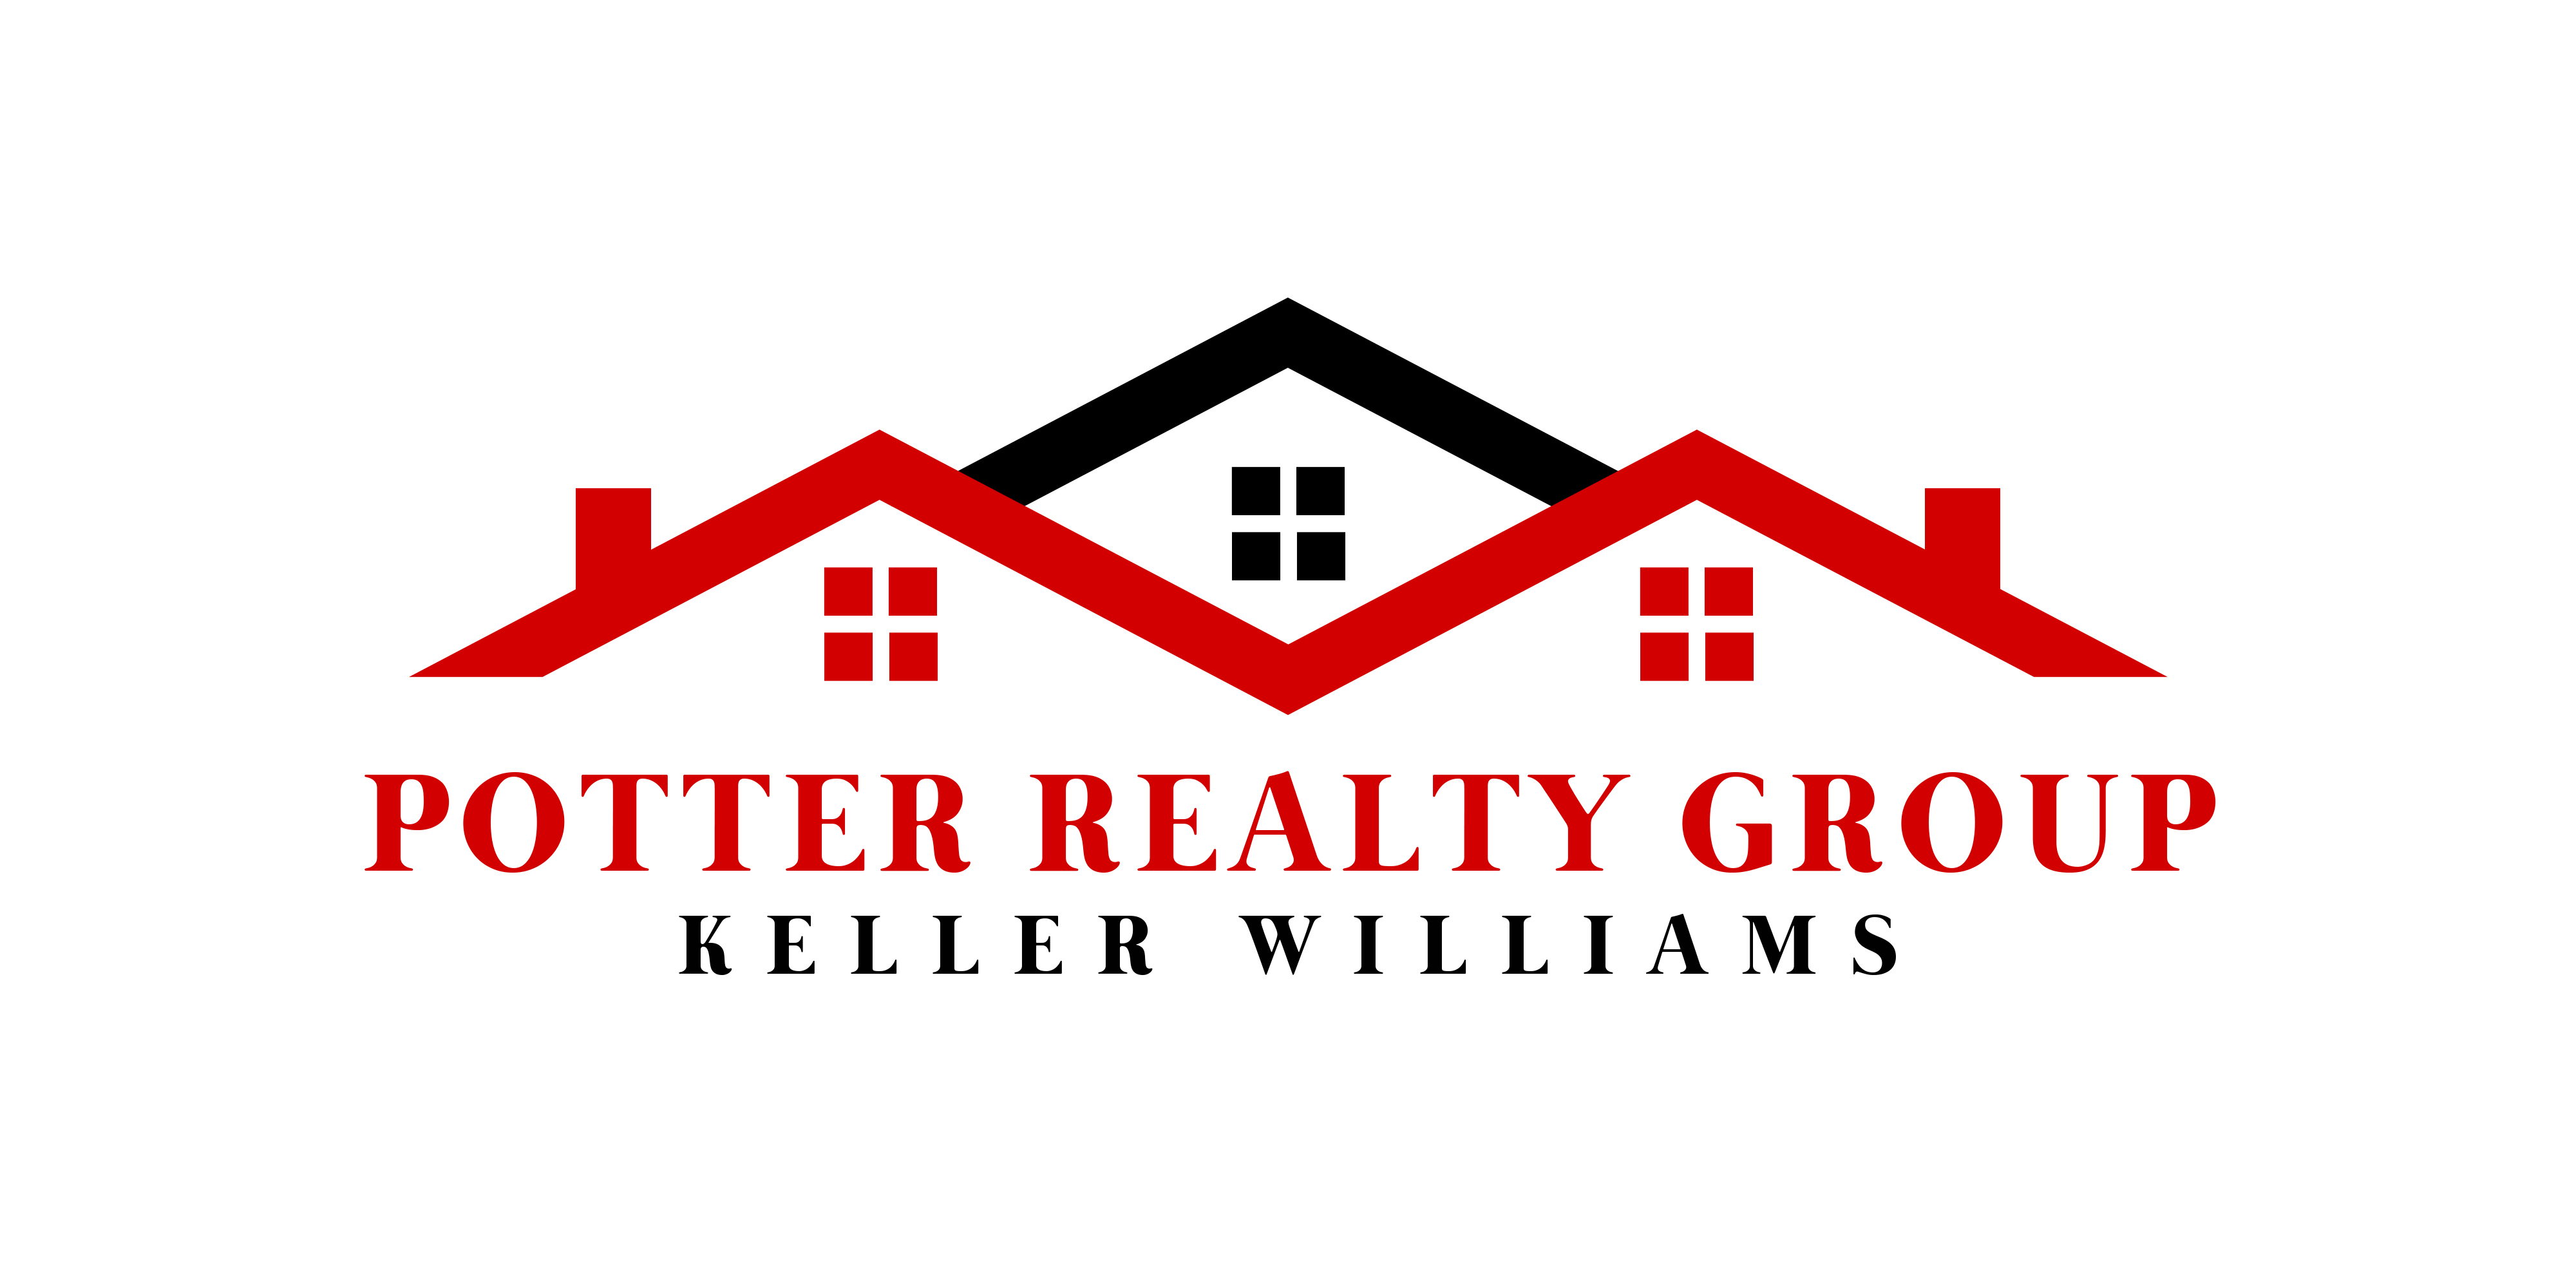 Potter Realty Group